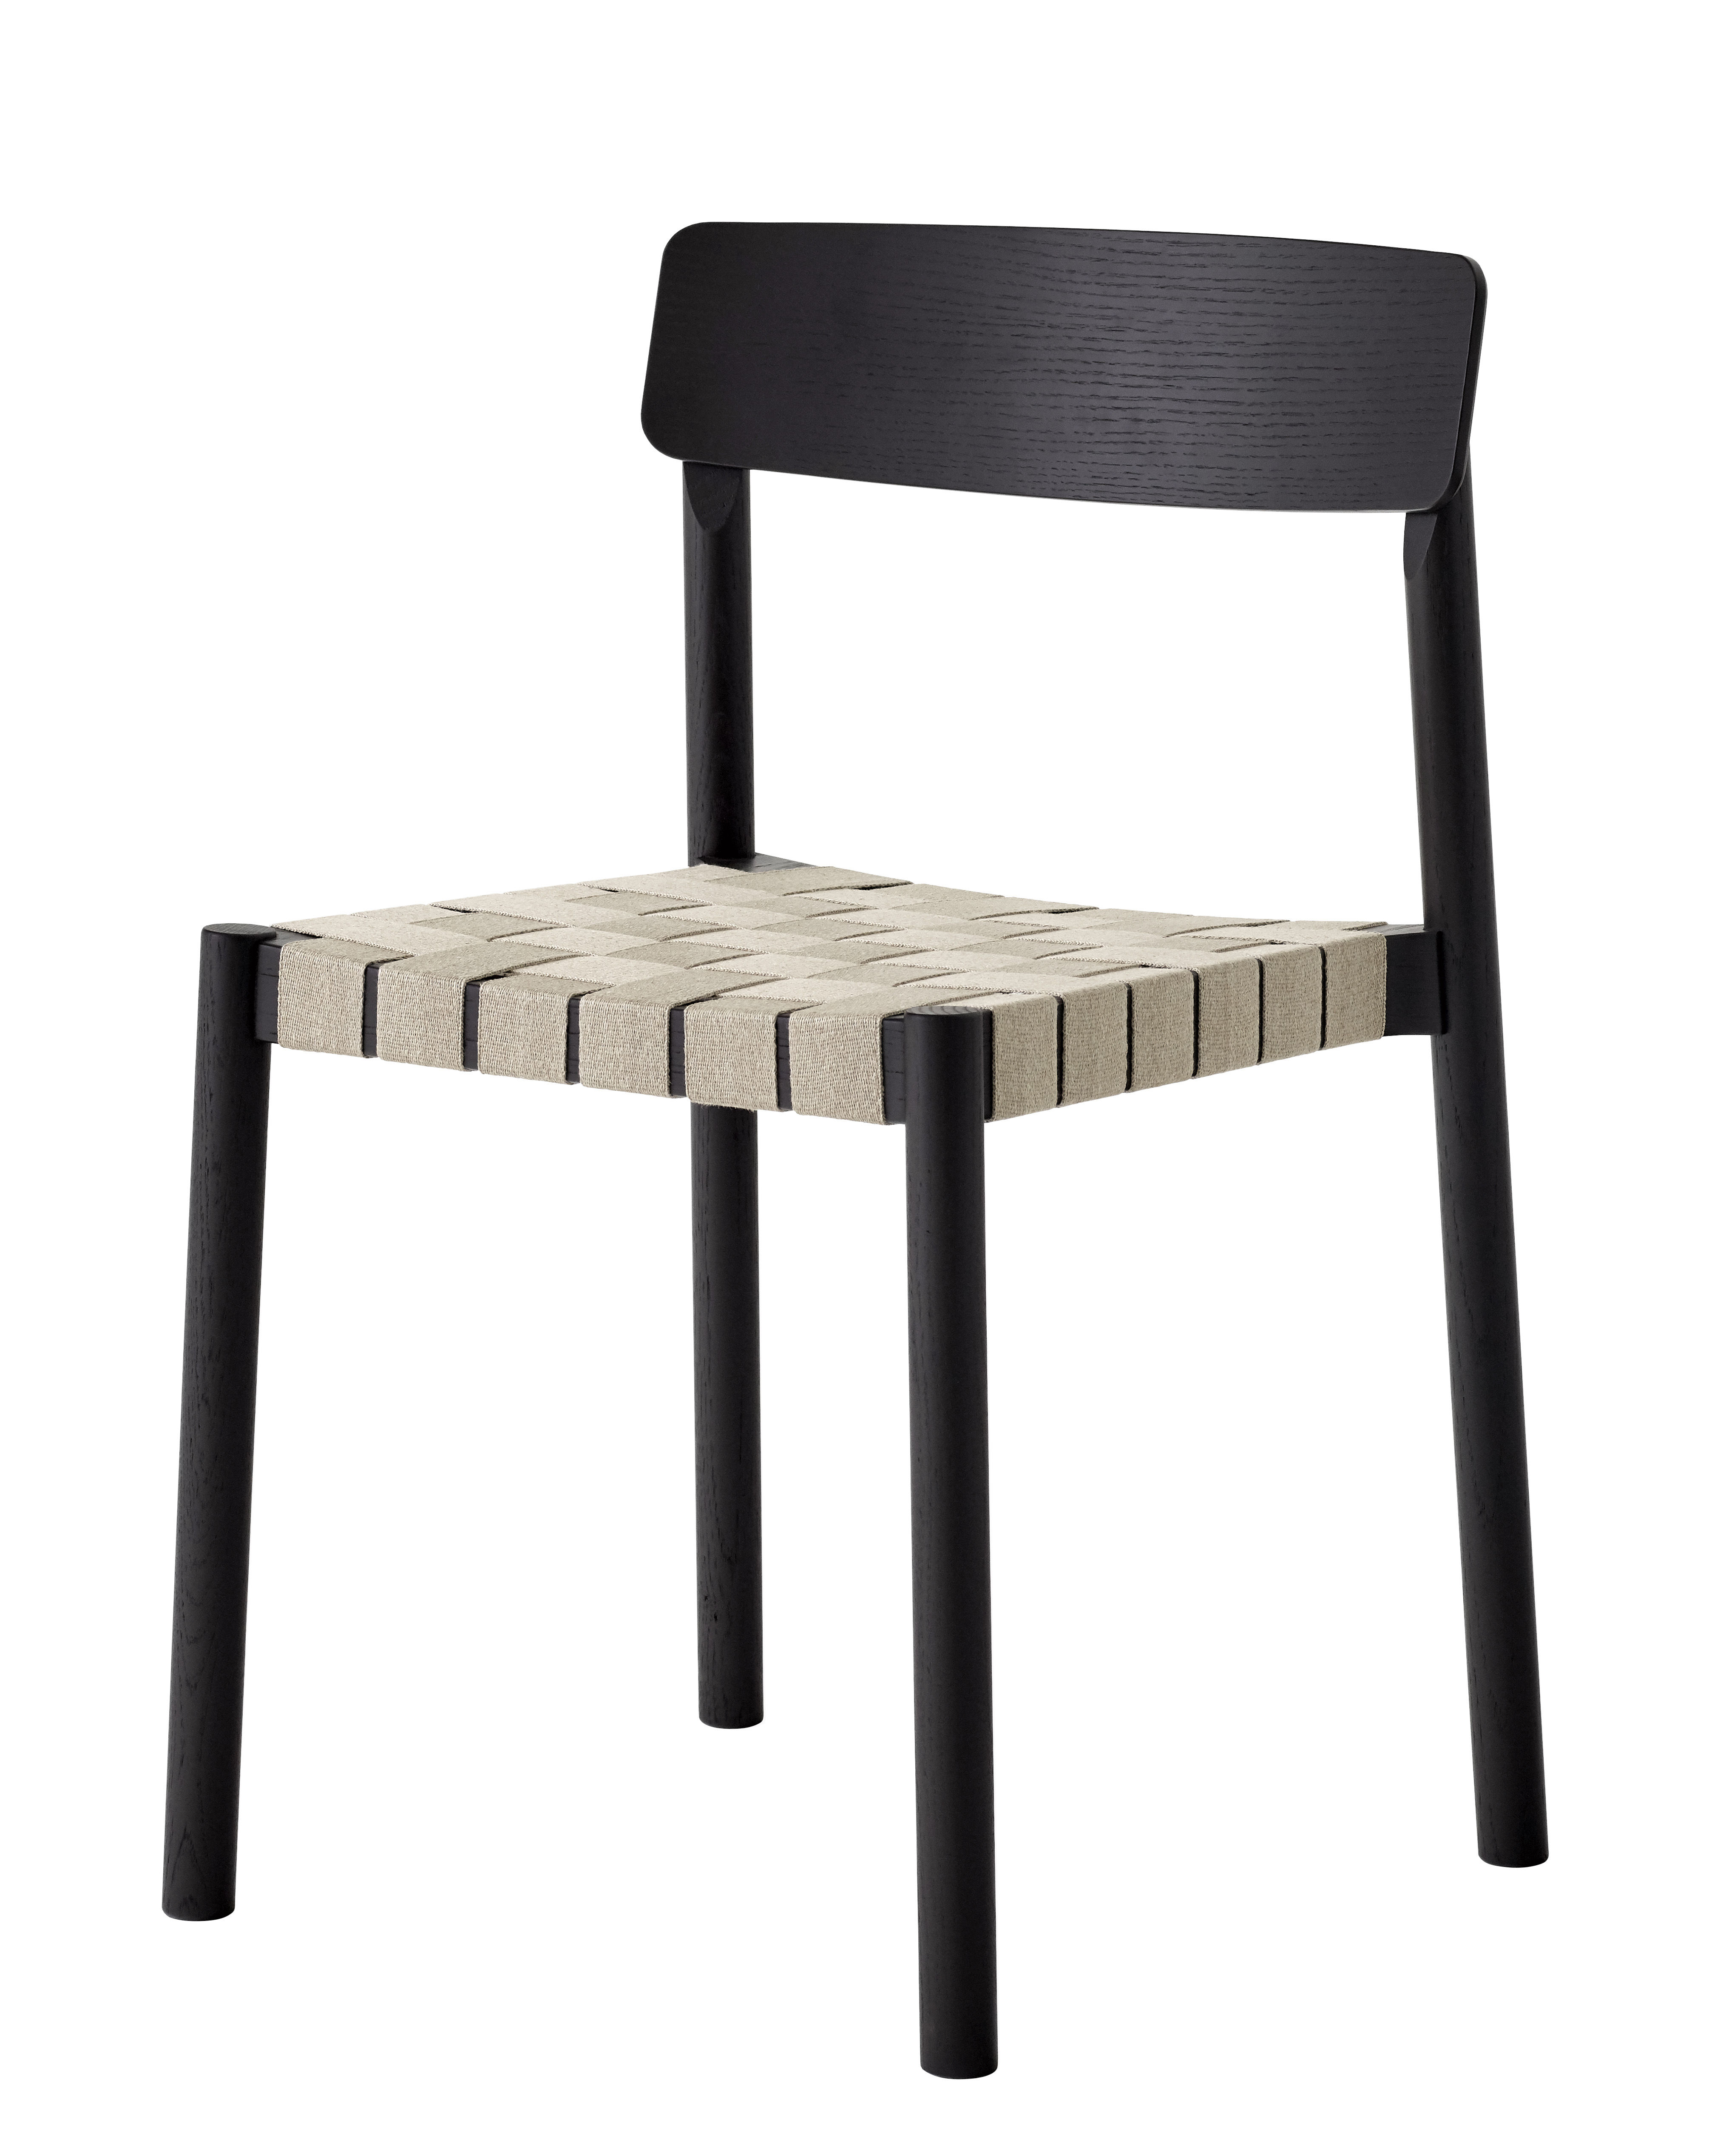 Furniture - Chairs - Betty TK1 Stacking chair by &tradition - Black - Linen, Plywood, Solid wood